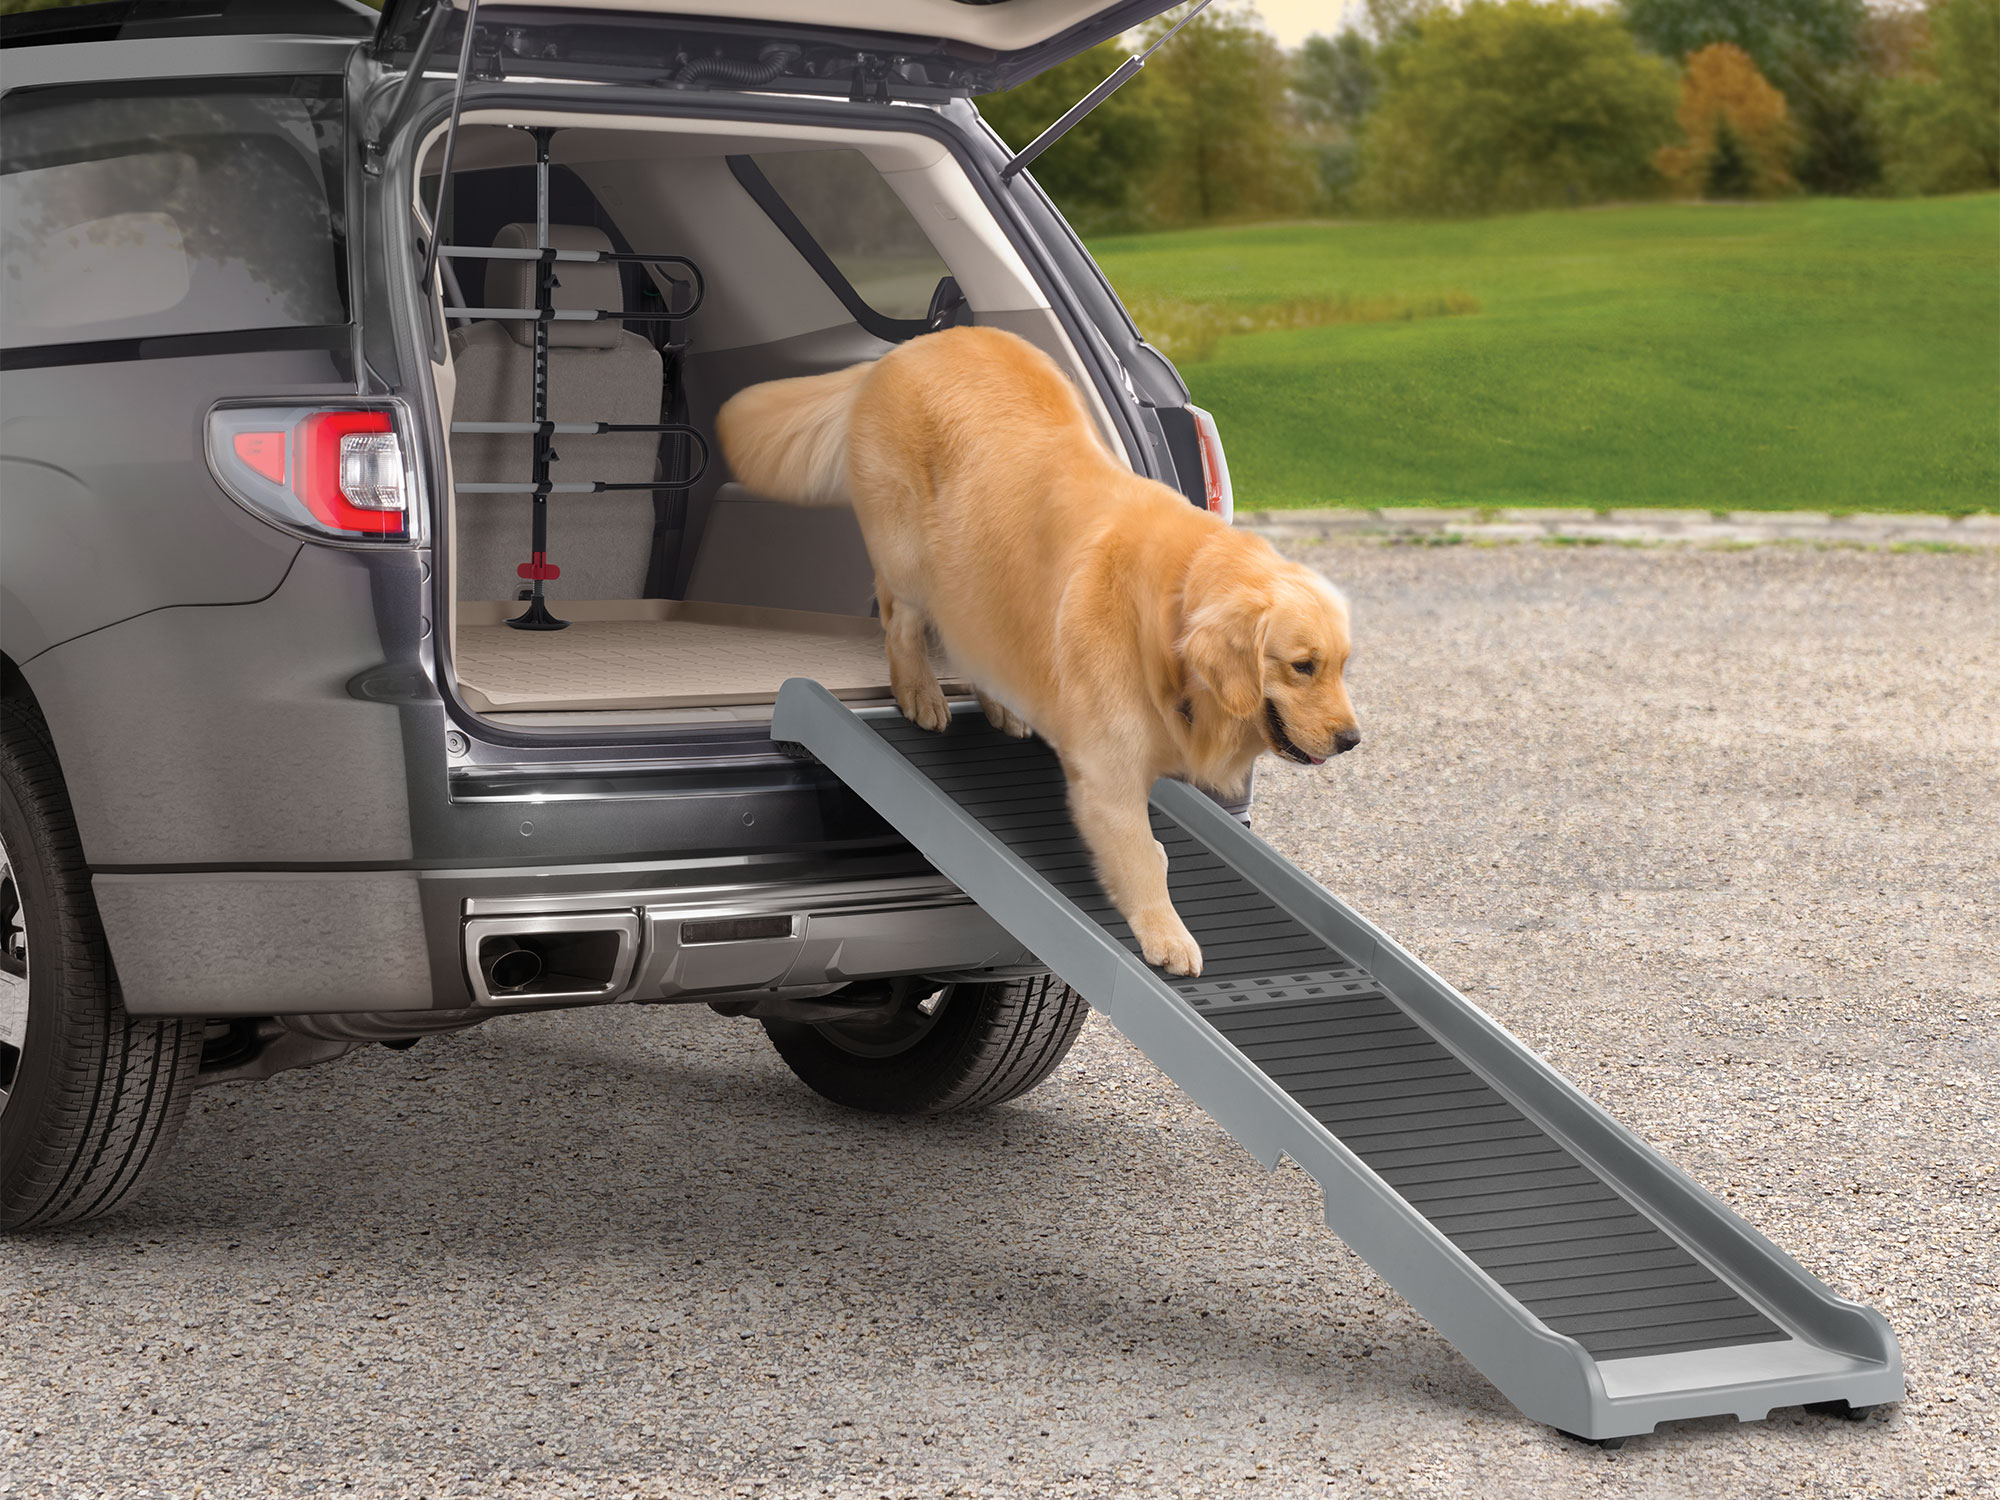 The WeatherTech PetRamp is a lightweight easy-to-use dog ramp perfect for just about every canine companion!